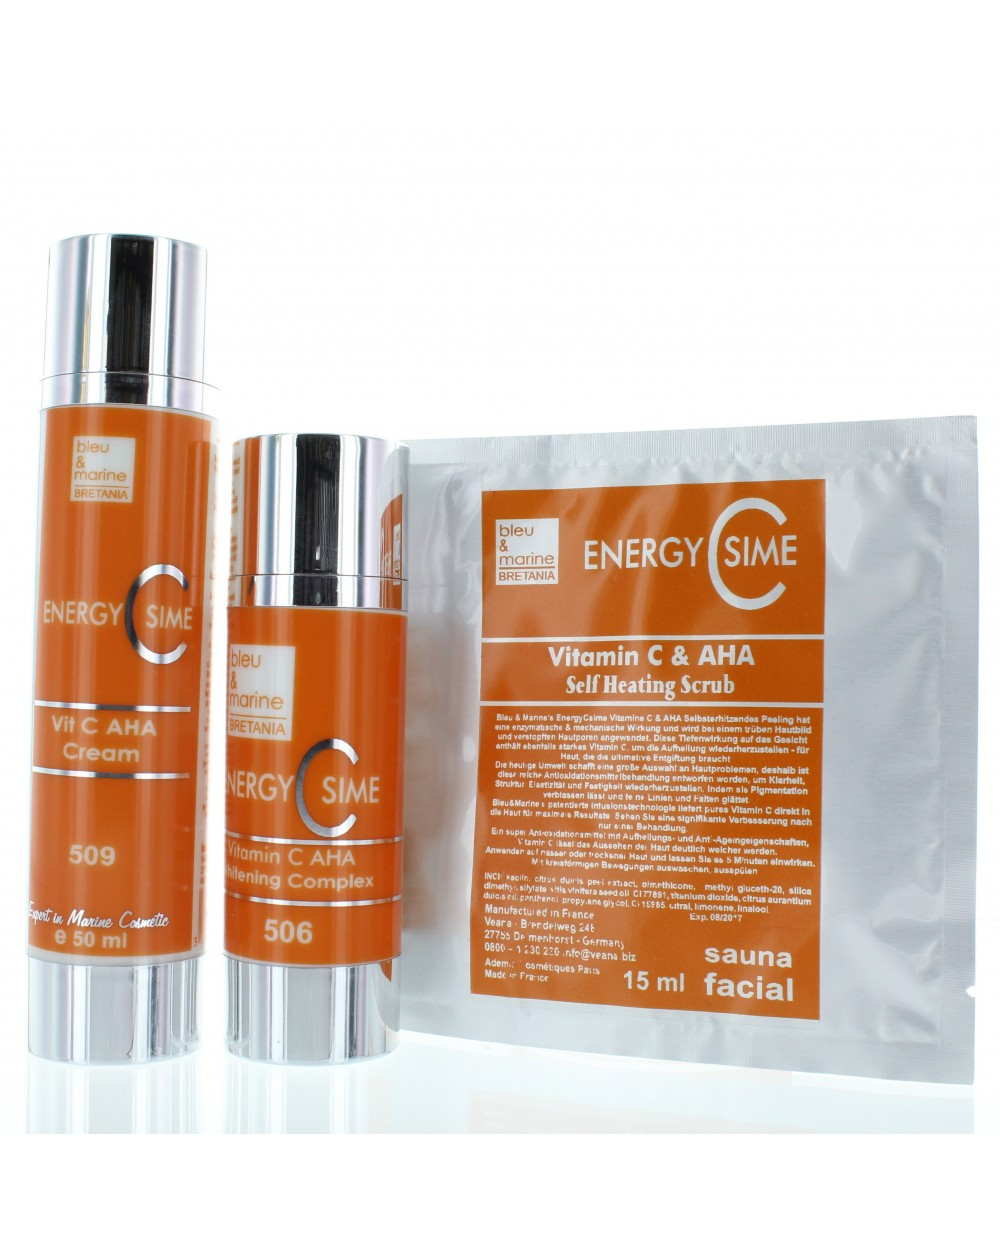 EnergyCsime Whitening Complex + Cream + Self Heating Scrub